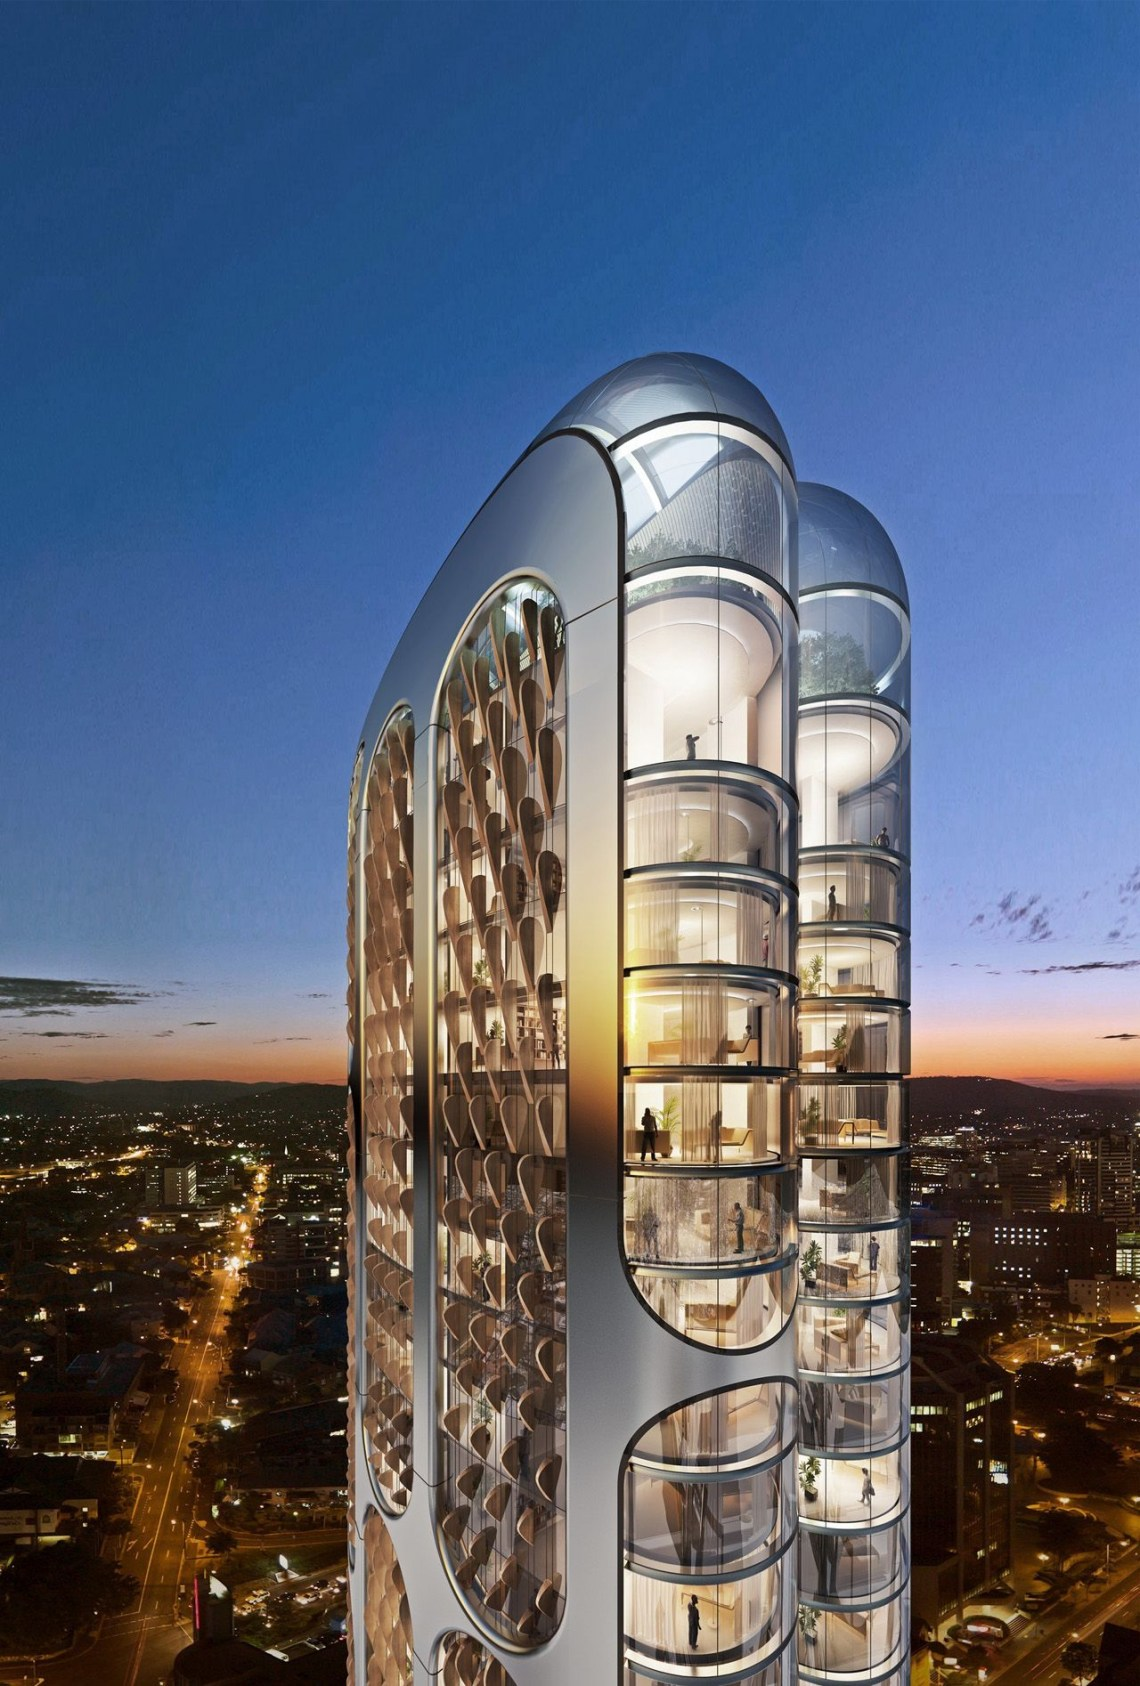 Futuristic 197 Building In The Heart Of Parramatta